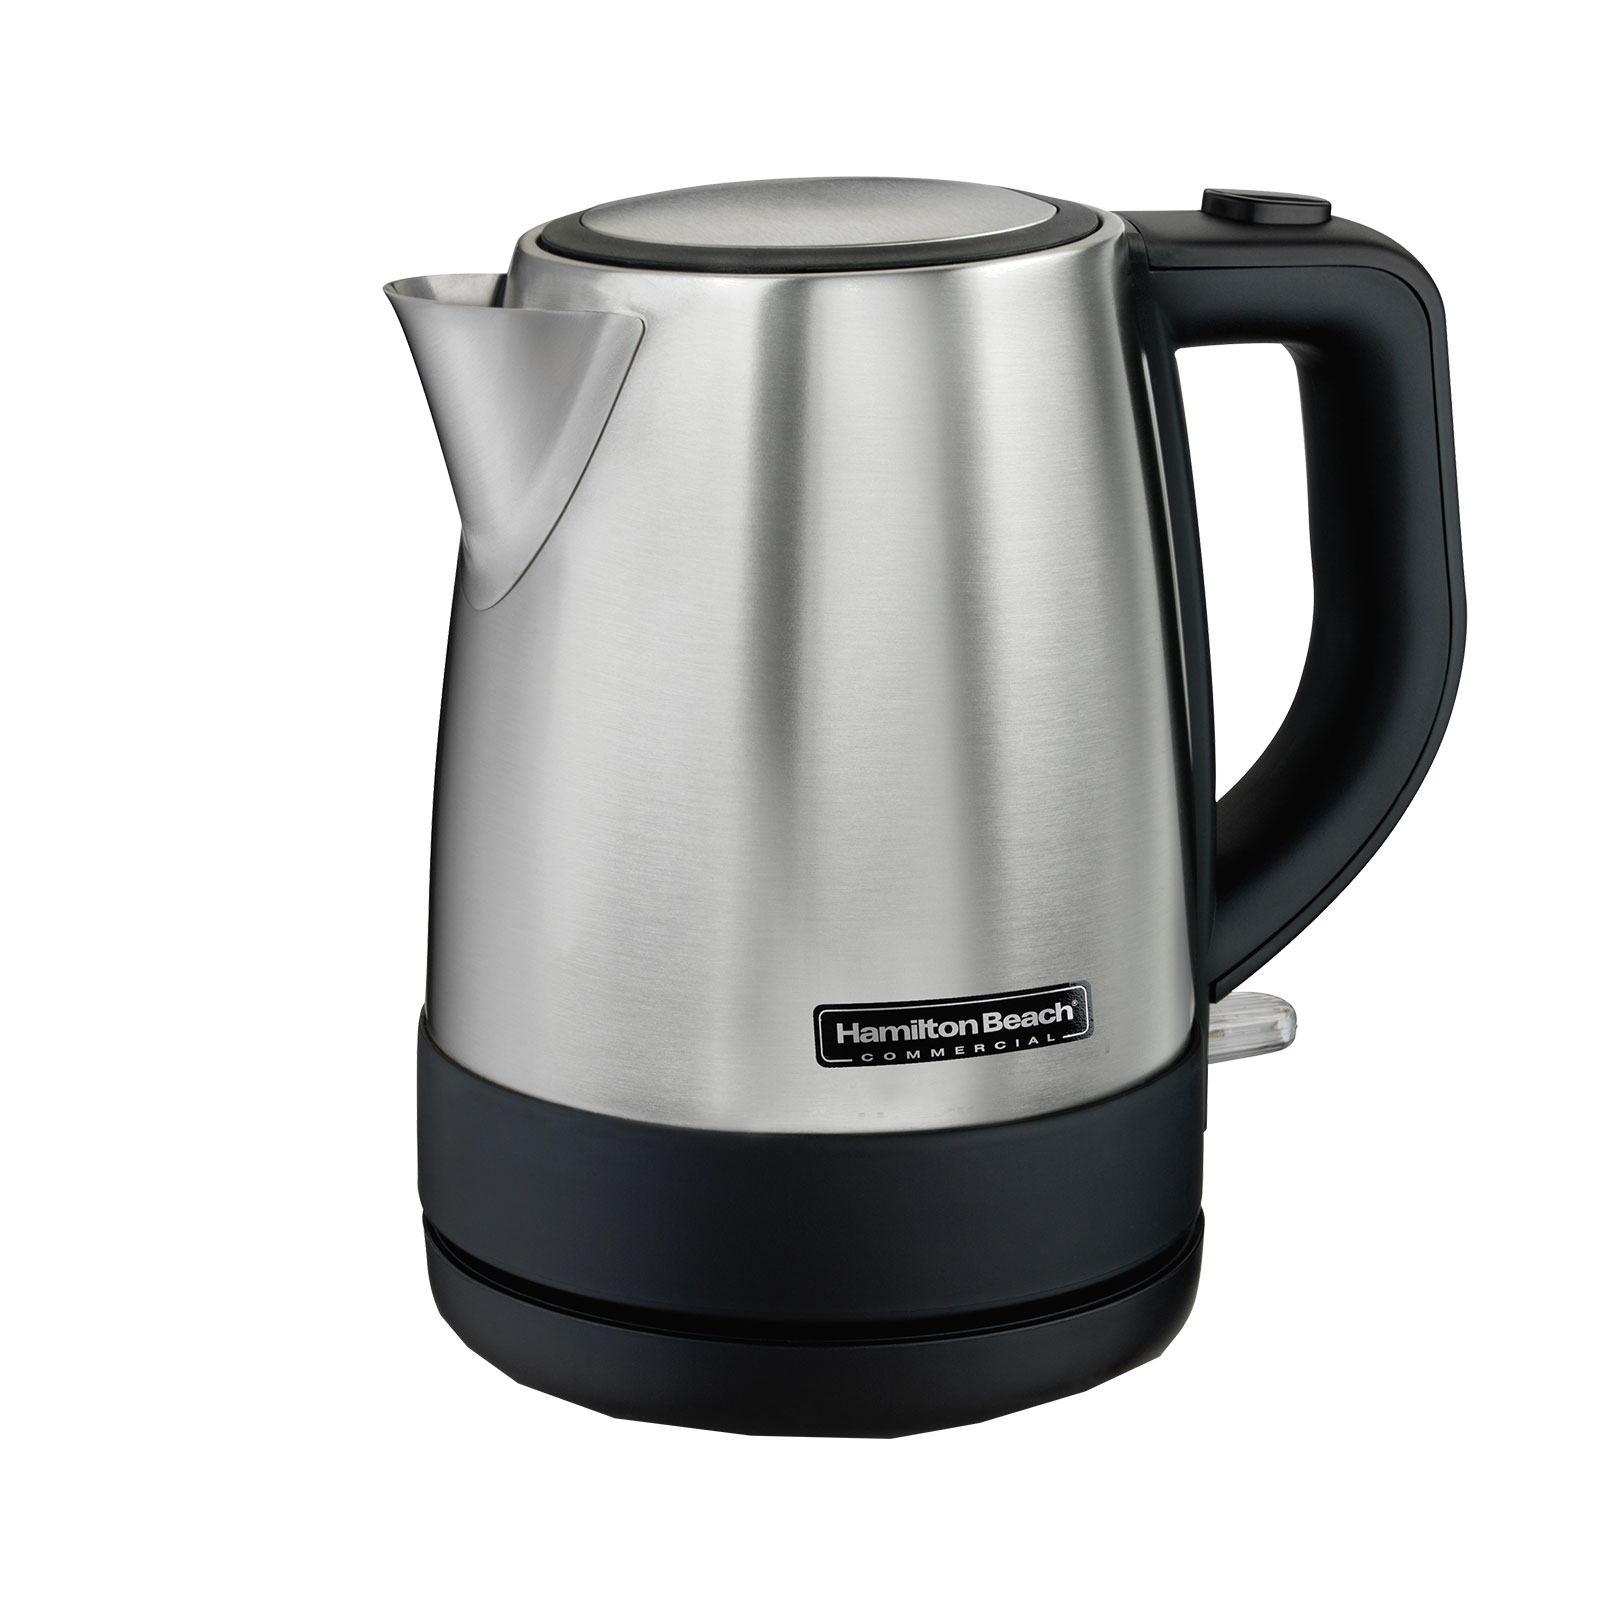 Hamilton Beach HKE110 tea kettle, electric